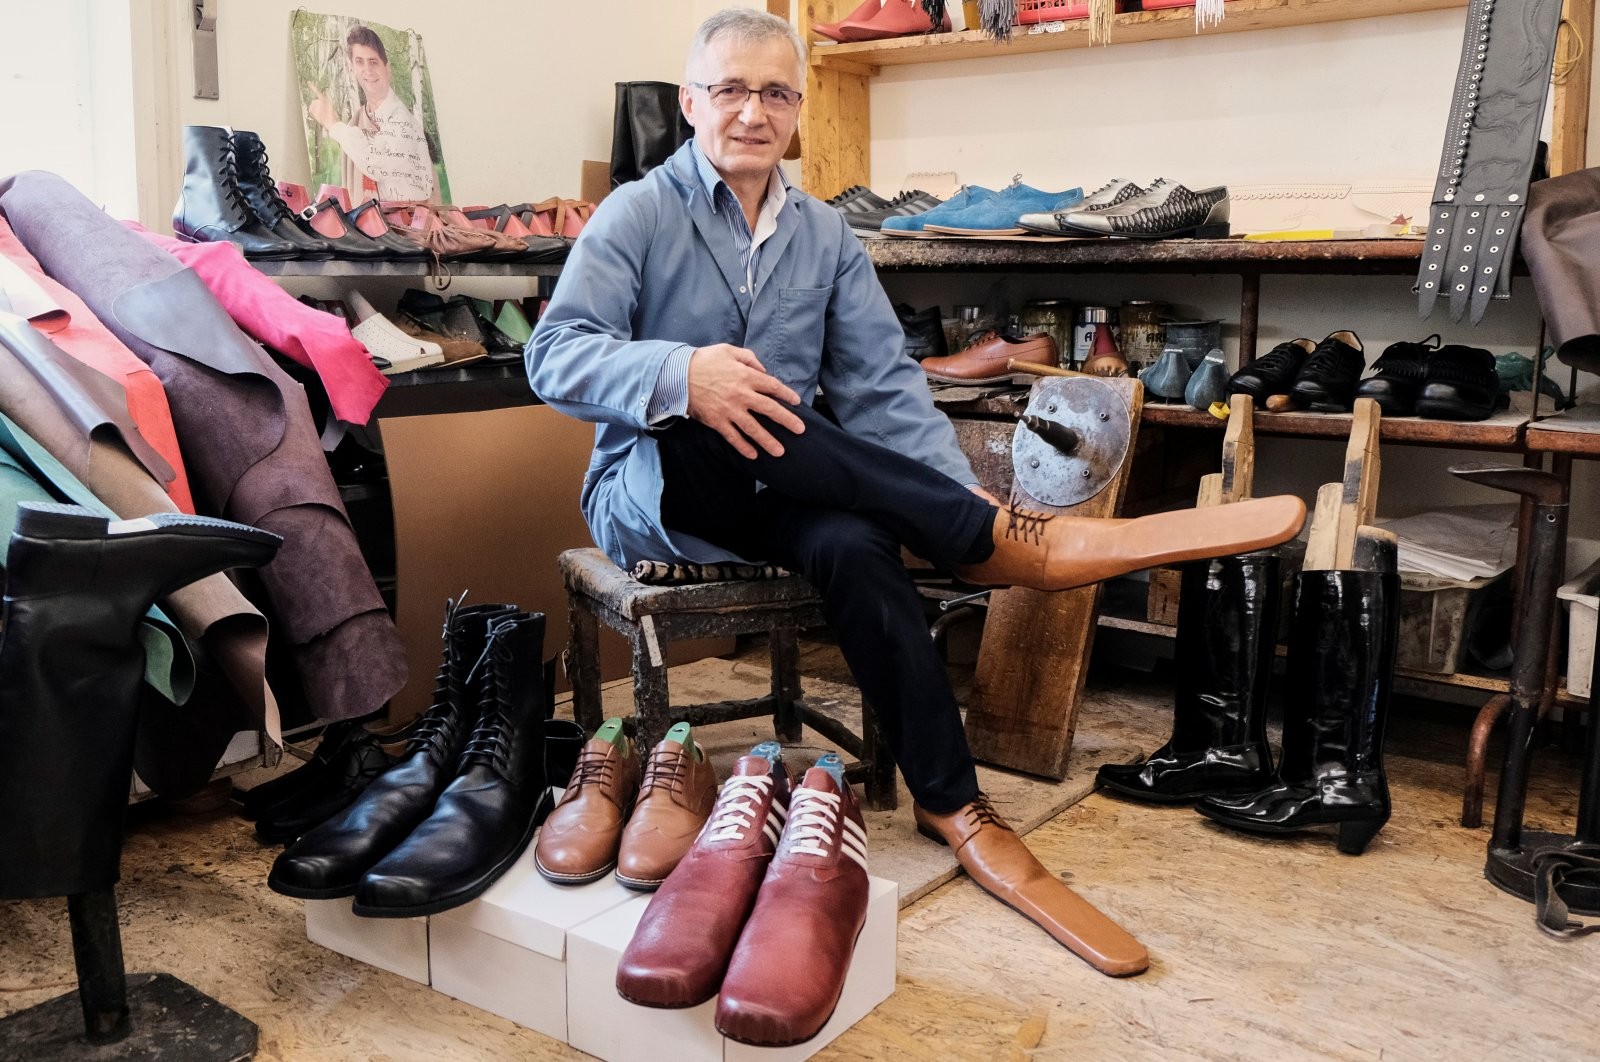 Romanian shoemaker Grigore Lup poses for a portrait while showcasing a pair of his long-nosed leather shoes to help keeping social distance, amid the outbreak of the coronavirus, in Cluj-Napoca, Romania, May 29, 2020. (Inquam Photos via Reuters)